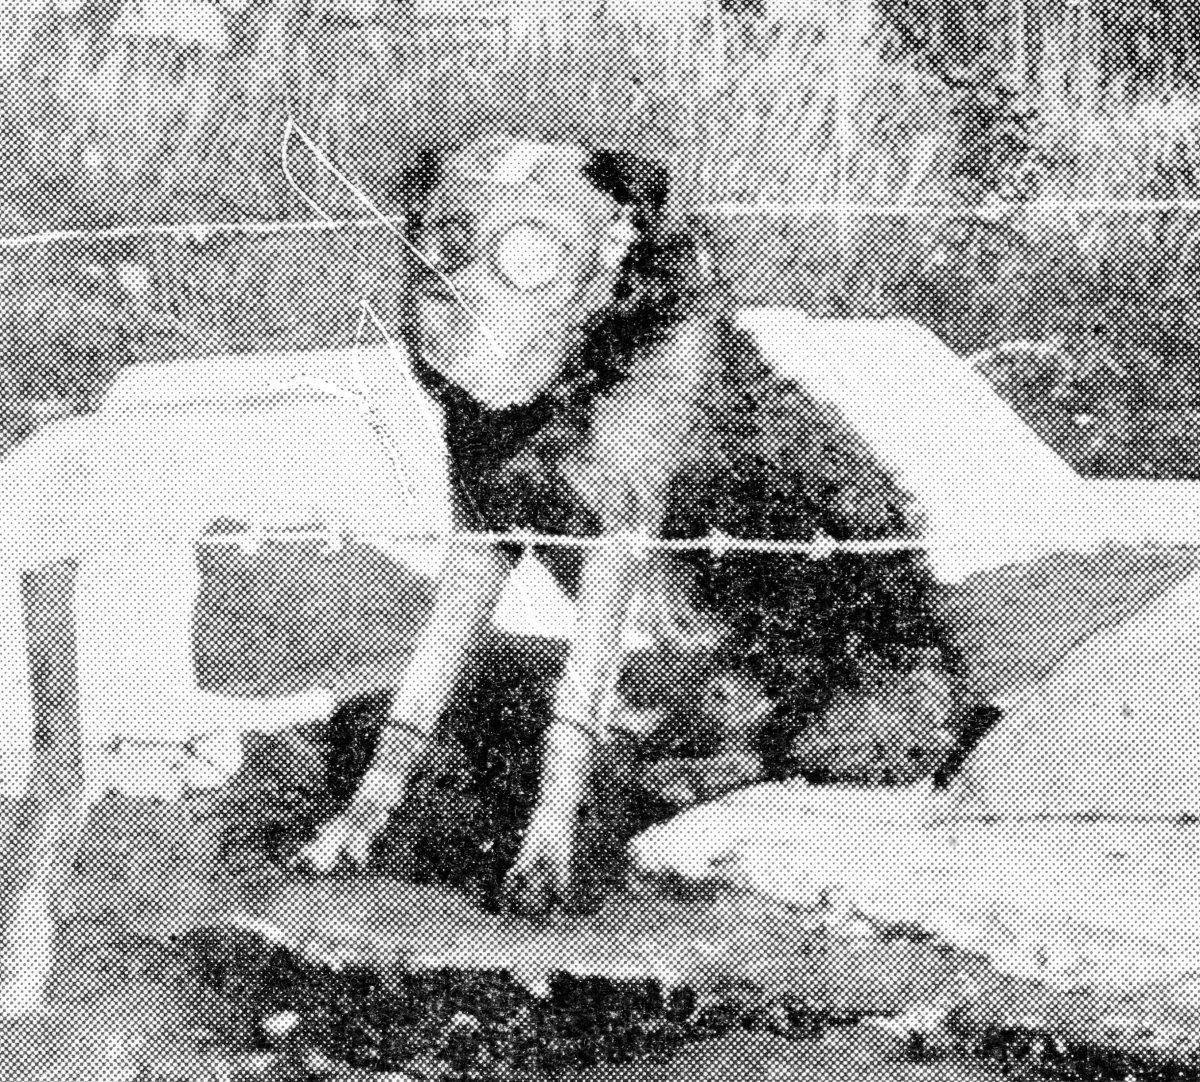 Numbers of Major Richardson's famous Airedales were on active service with the Army, and, as shown in this photograph of a dog on sentry duty by the graves of two soldiers, were provided with gas-masks.